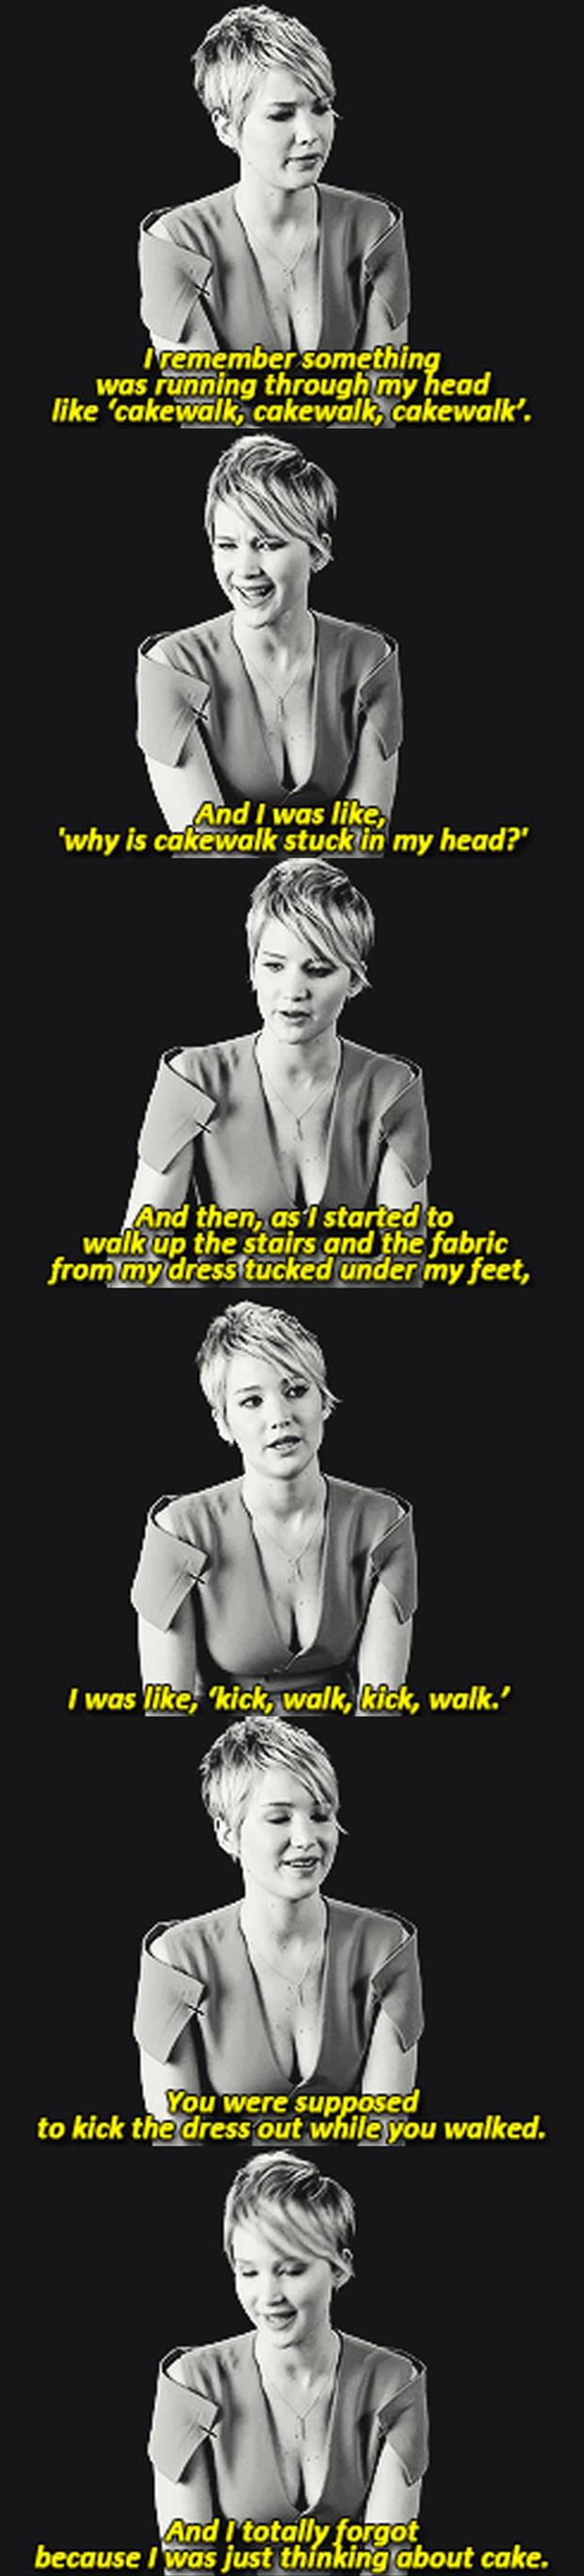 Jennifer lawrence talks about tripping at the oscars